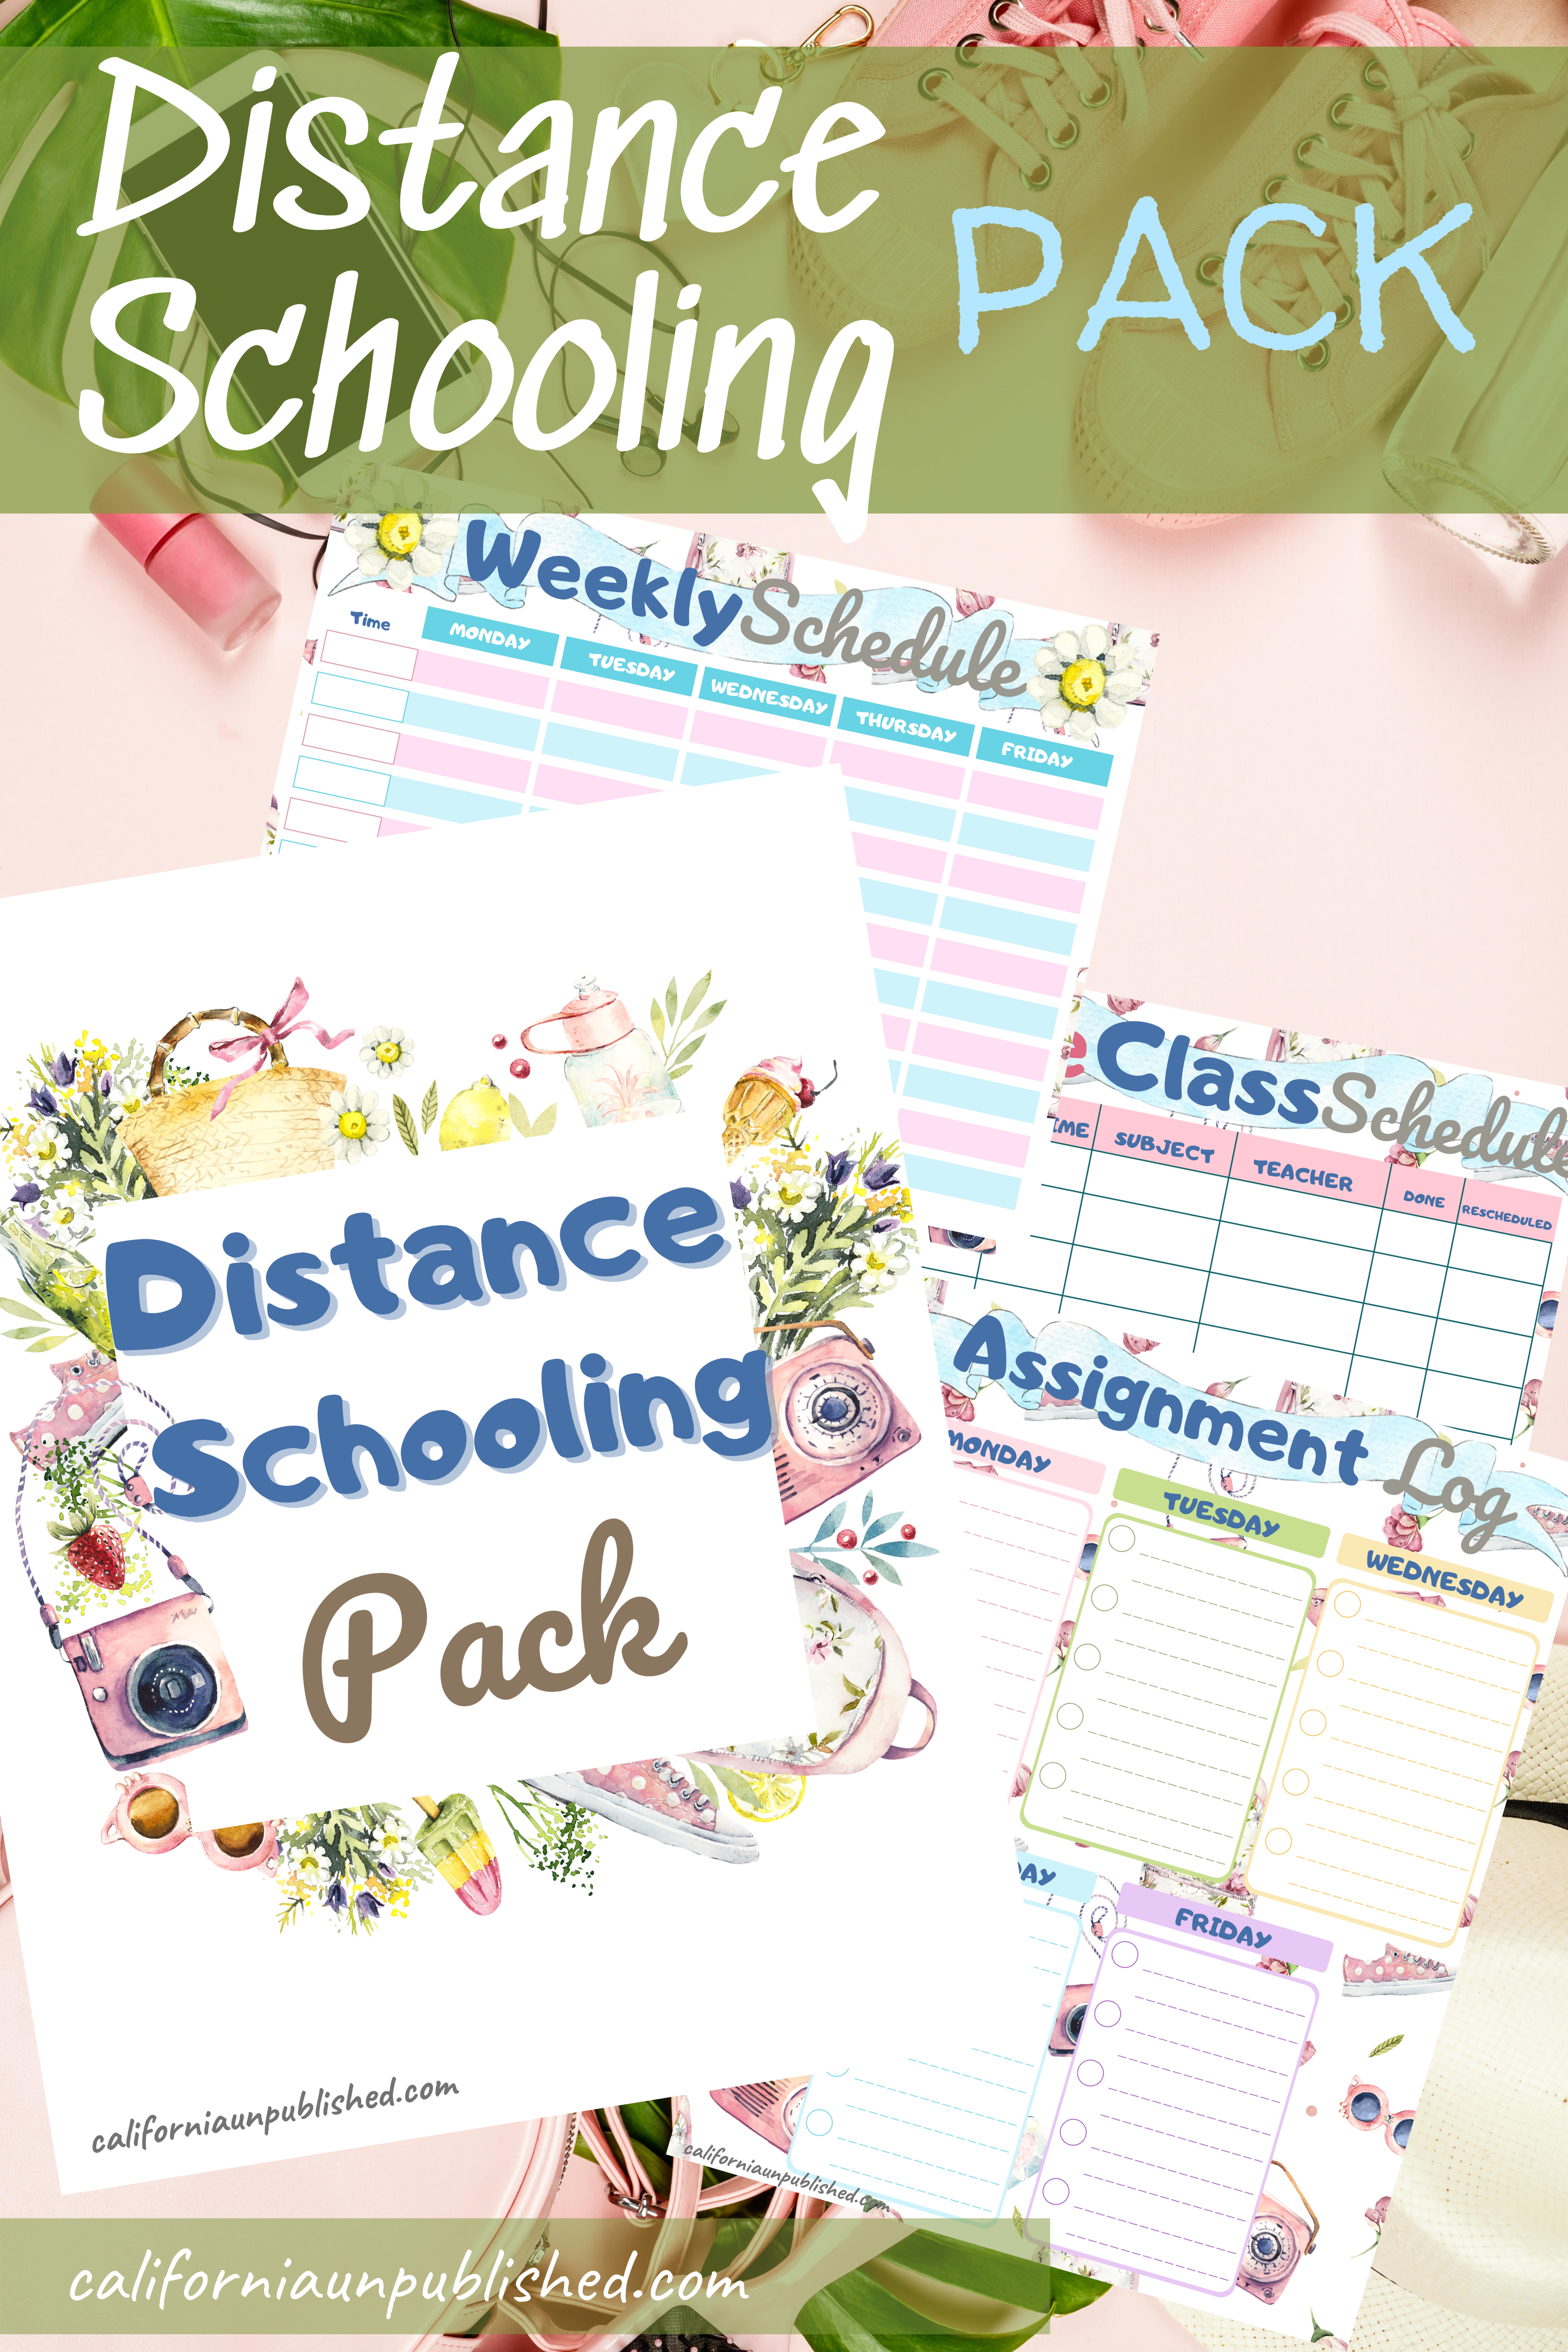 How to Make The Best of Distance Learning - Free Distance Learning Planner Printable